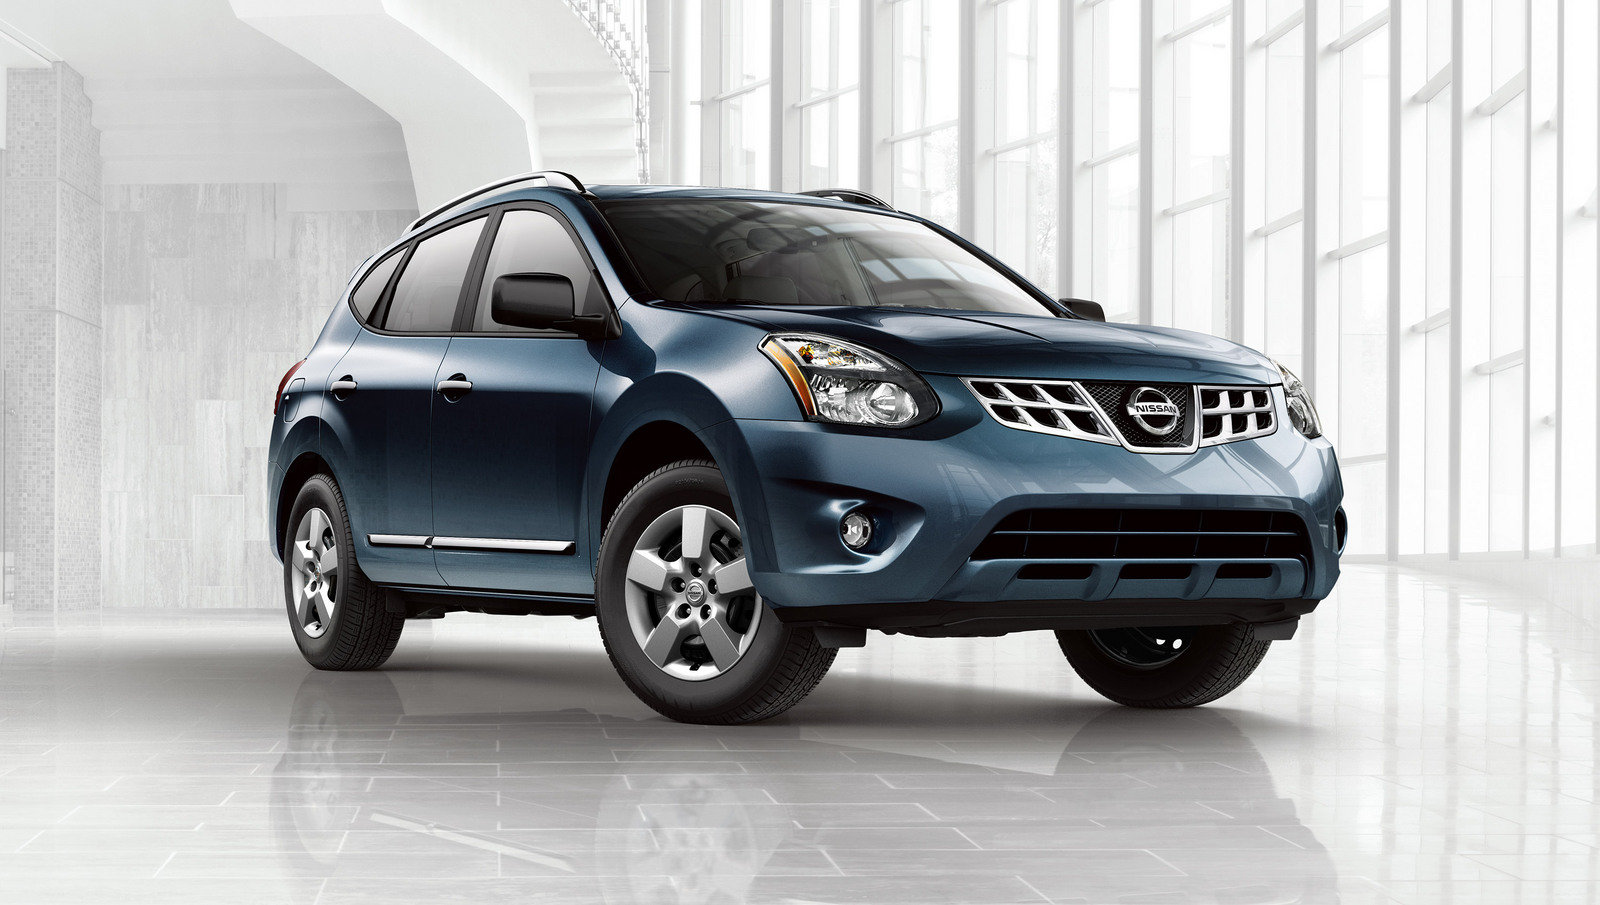 new 2014 nissan rogue select price quote w msrp and. Black Bedroom Furniture Sets. Home Design Ideas